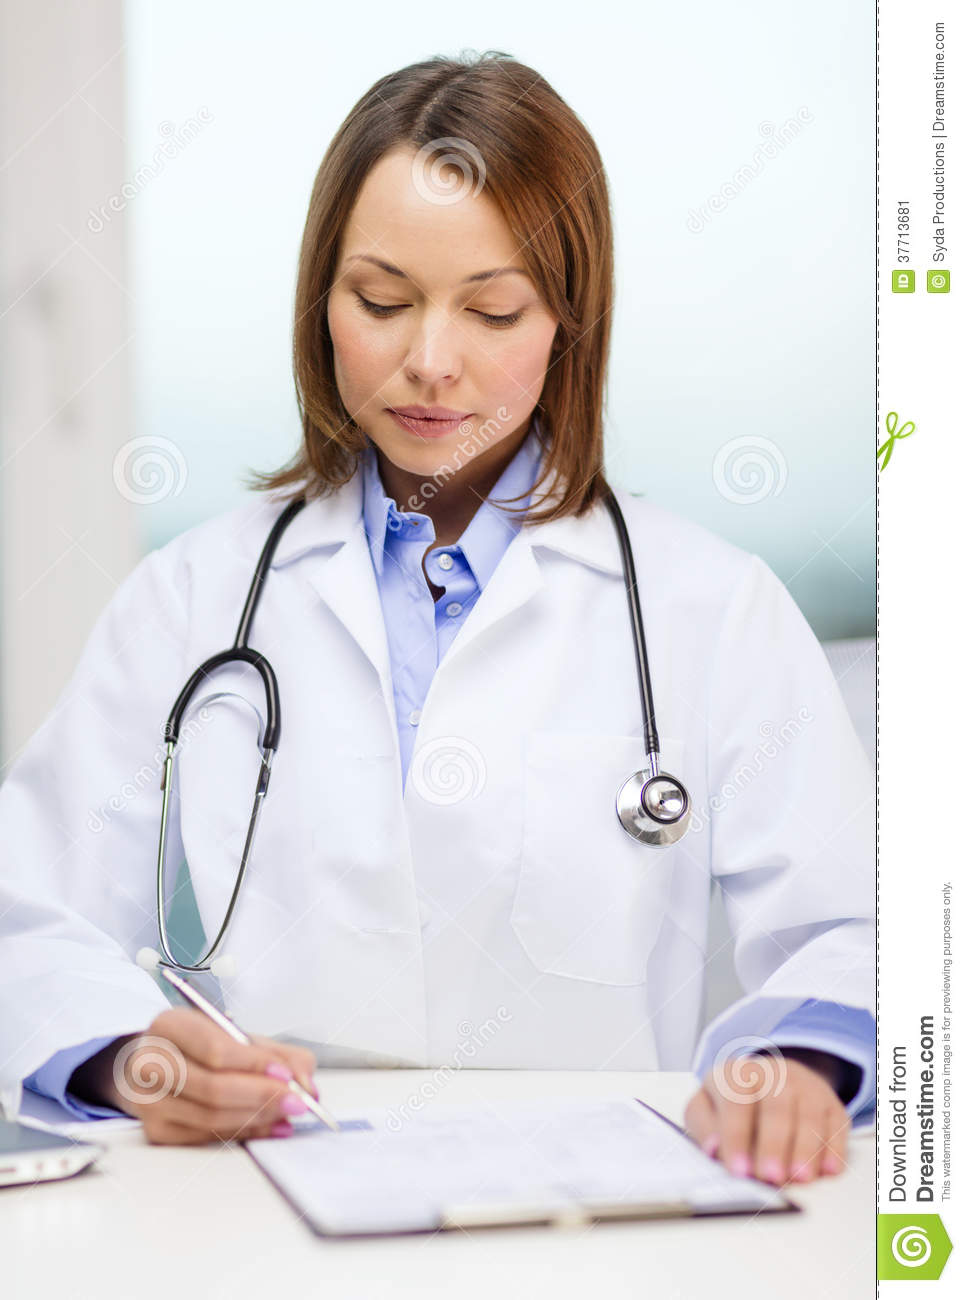 Busy Doctor With Laptop Computer And Clipboard Stock Image ...